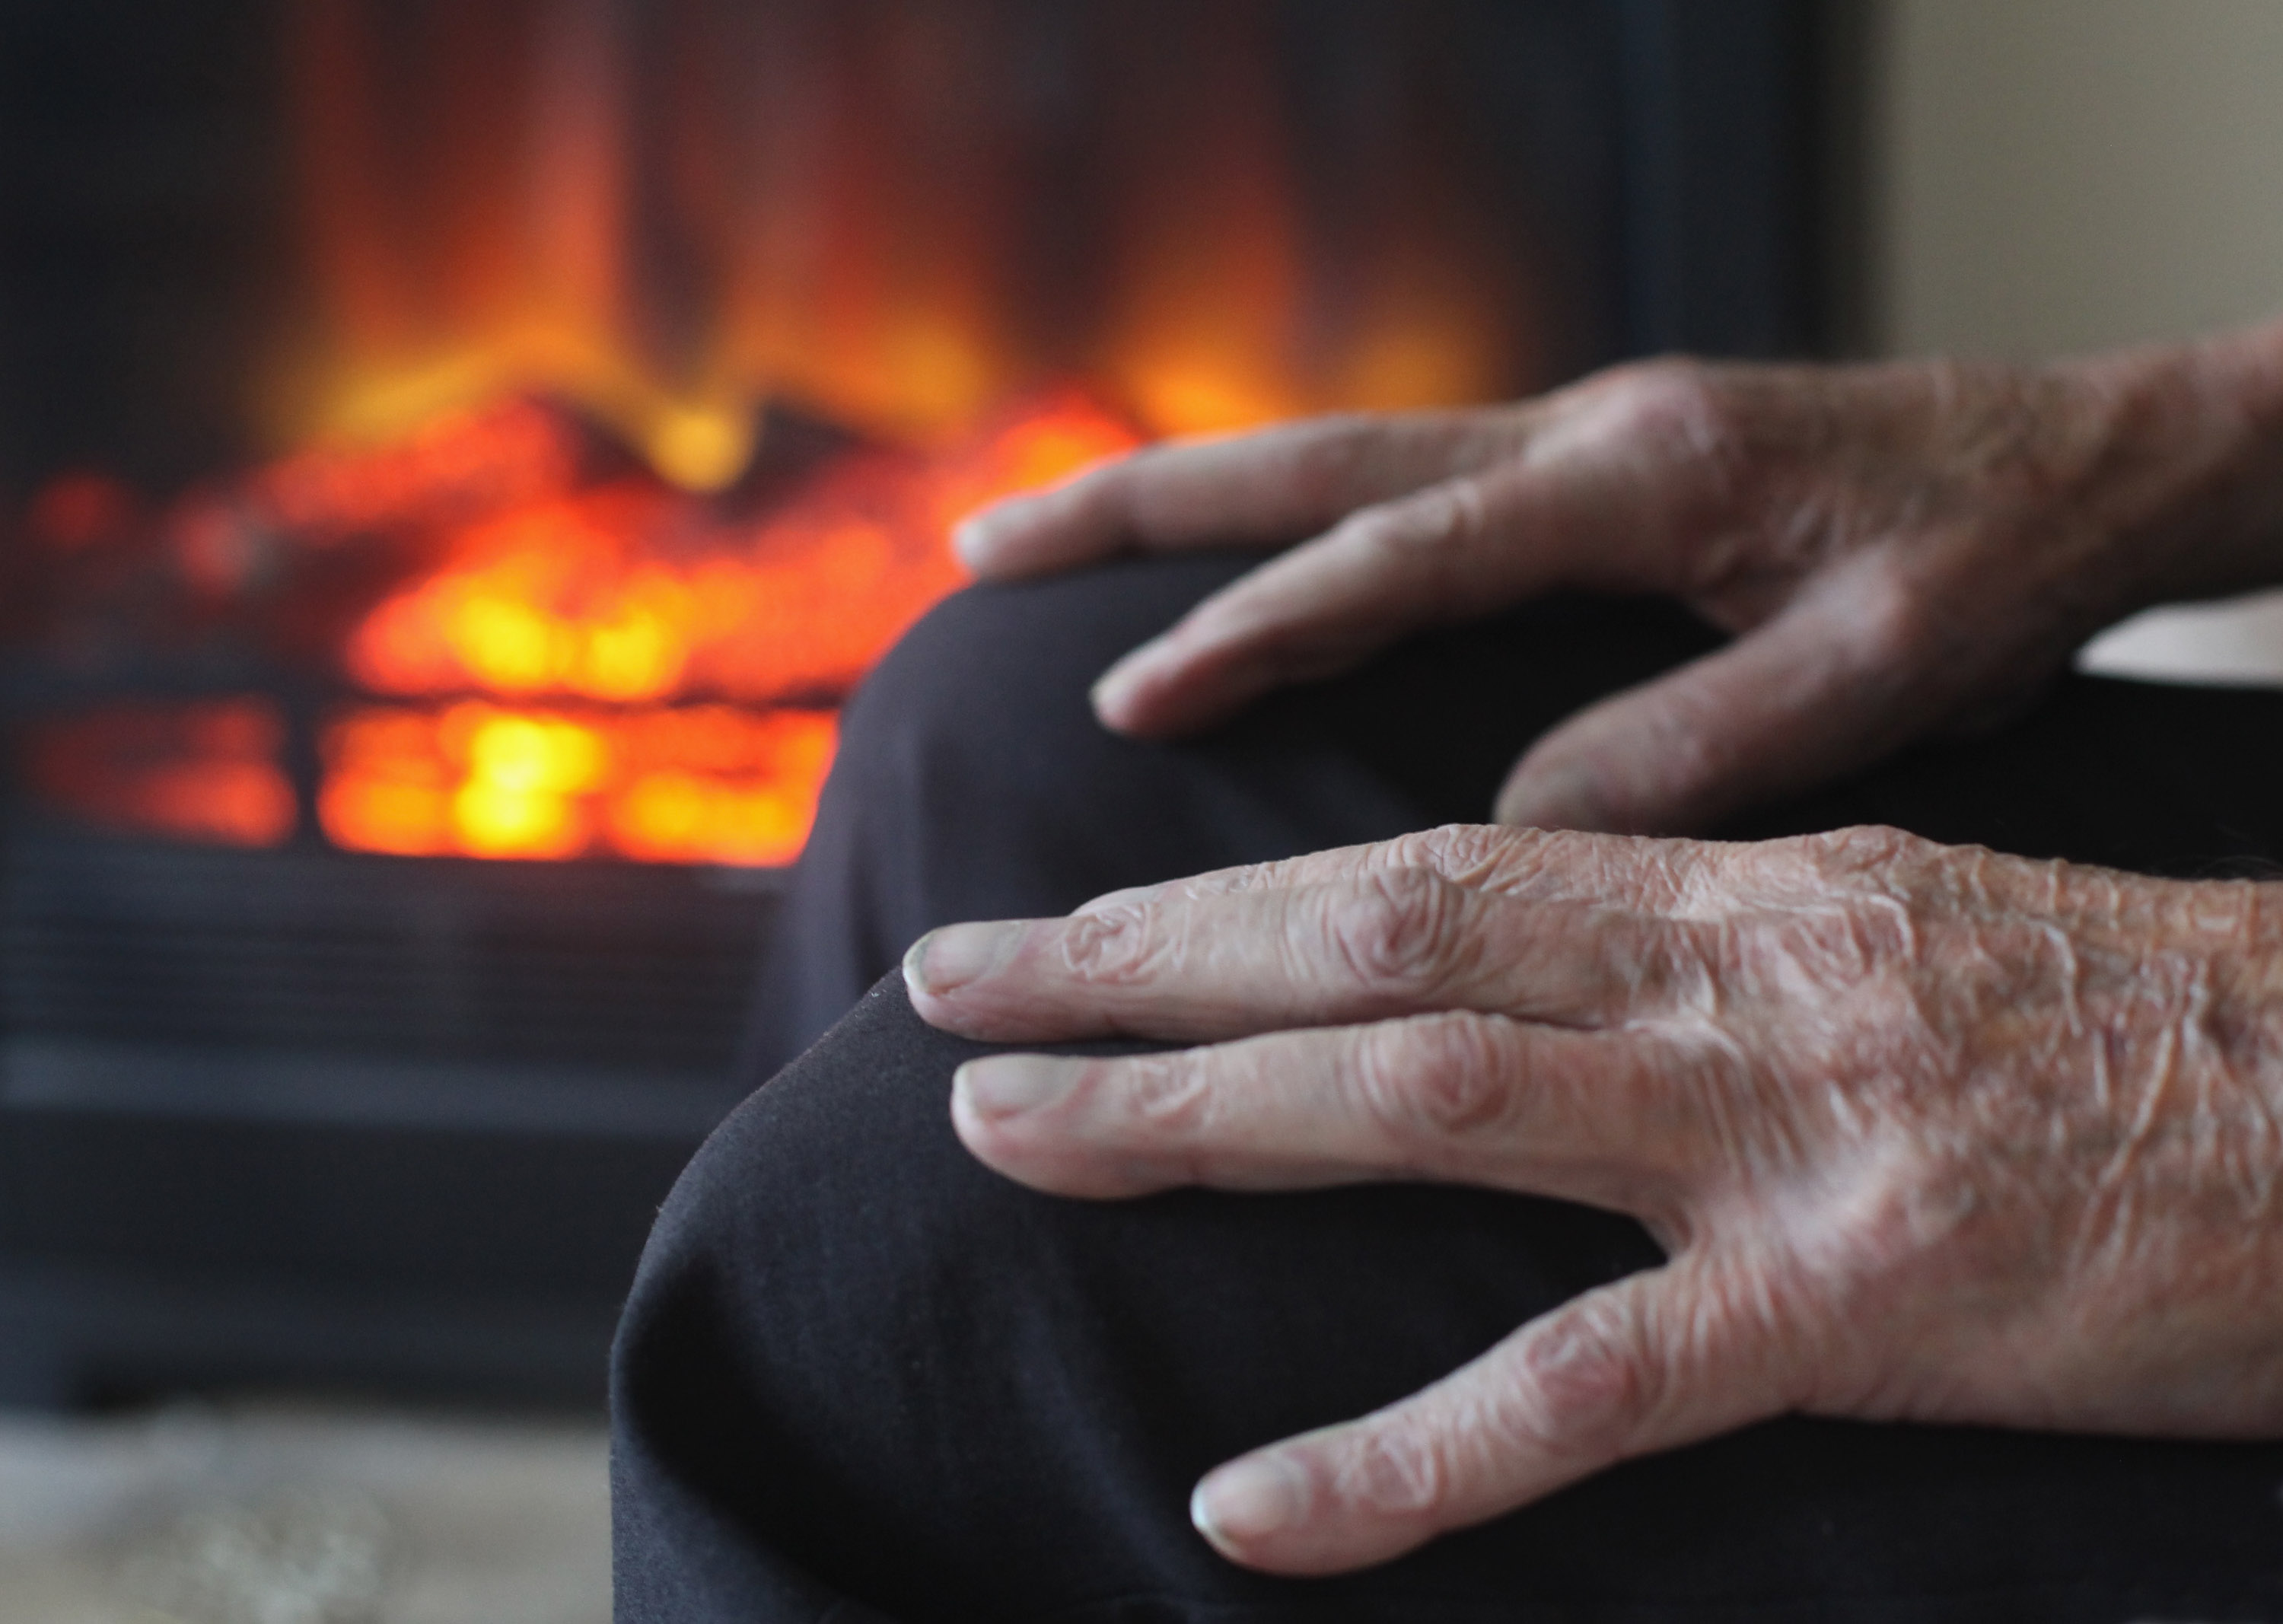 elderly person's hands, sitting by fire